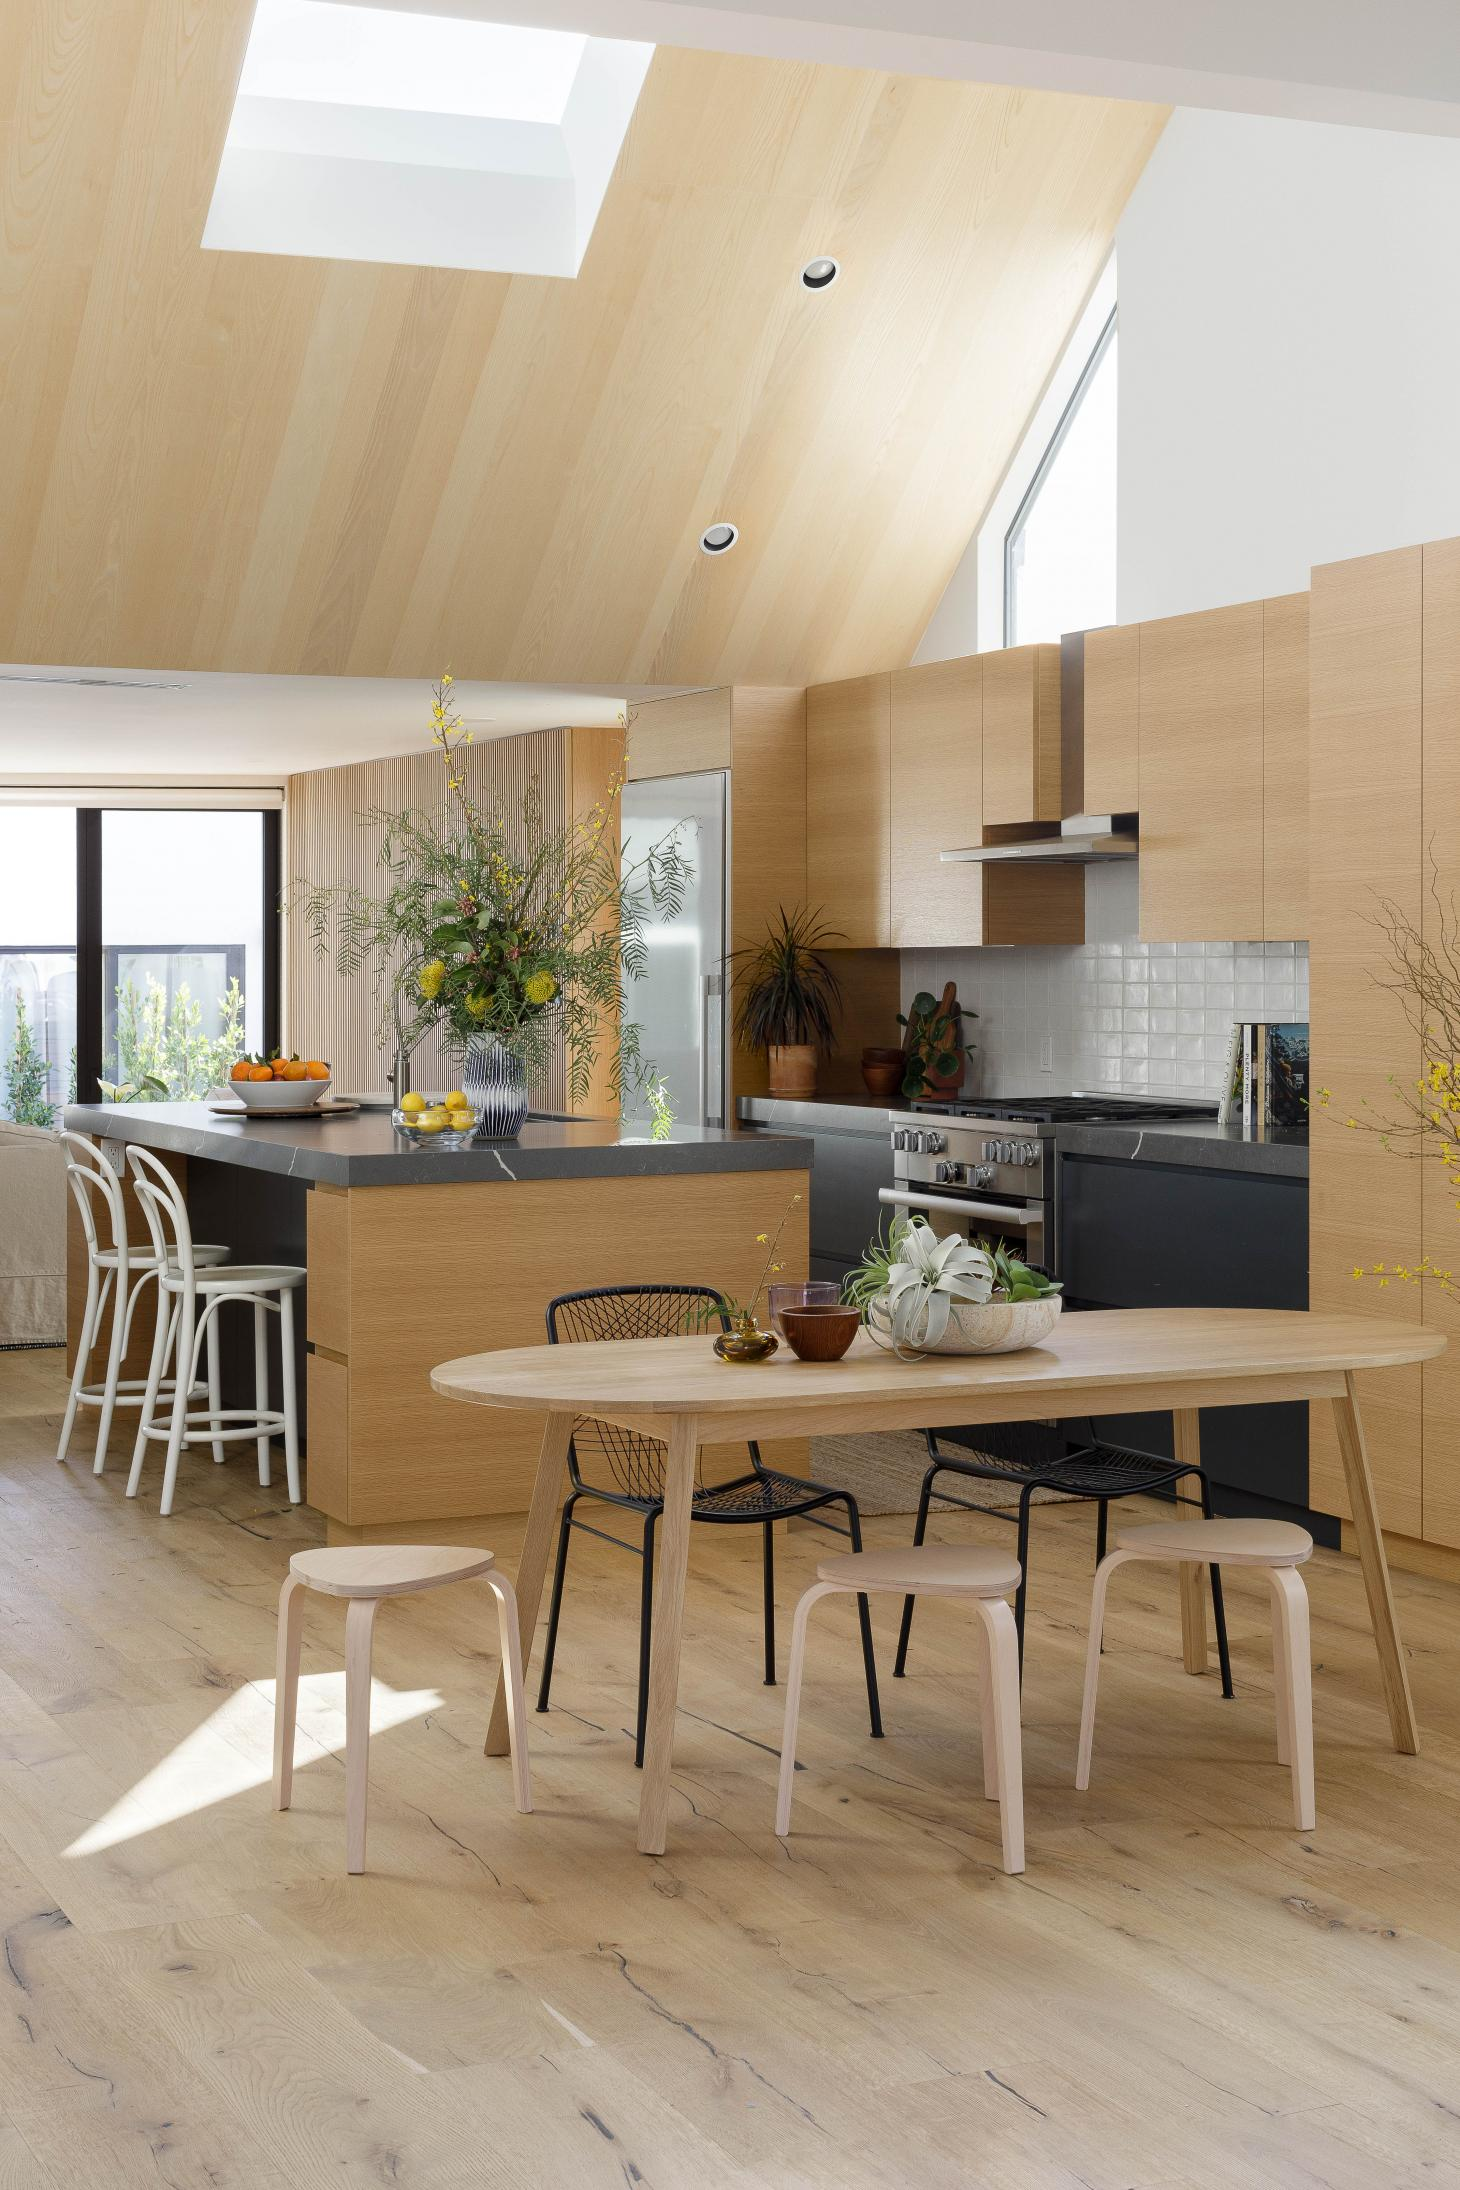 timber clad kitchen and dining area at the Curson Residence by Nwankpa Design